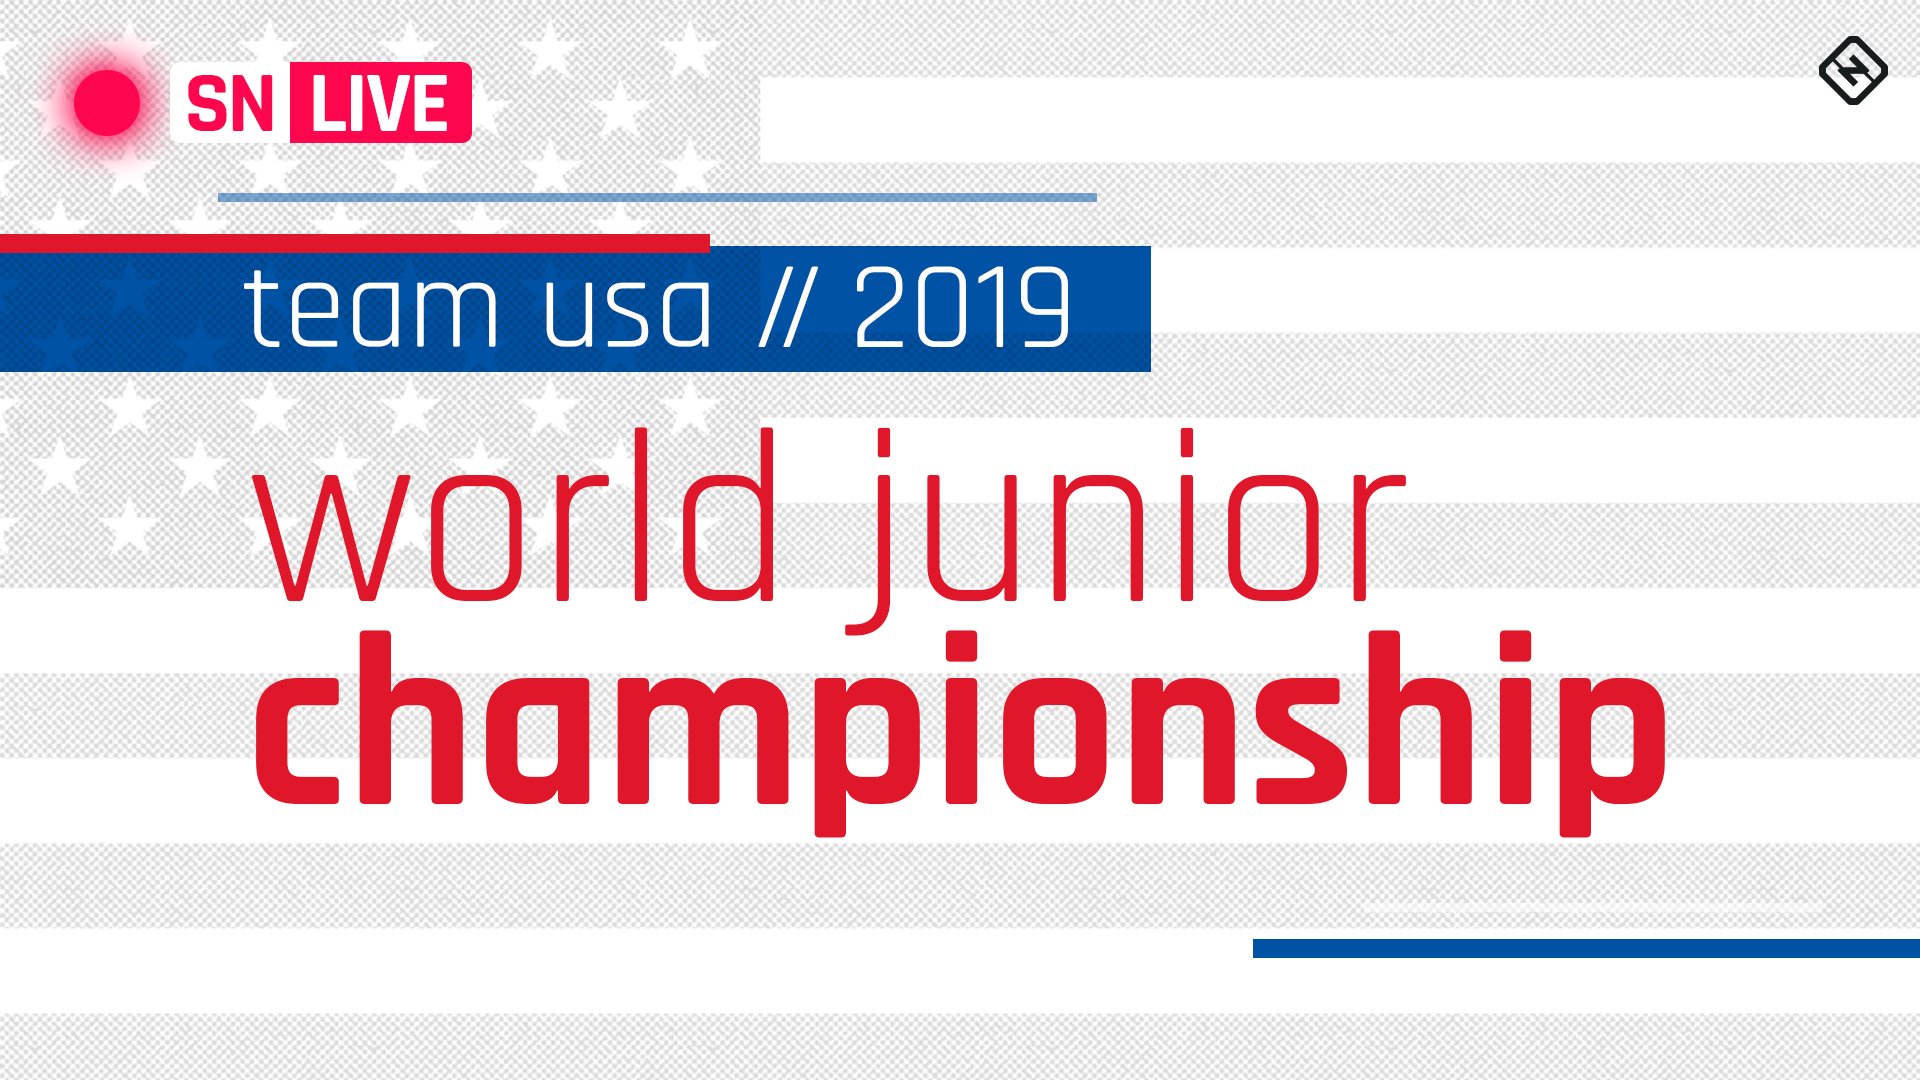 Us Vs Finland Live Results Updates Highlights From The 2019